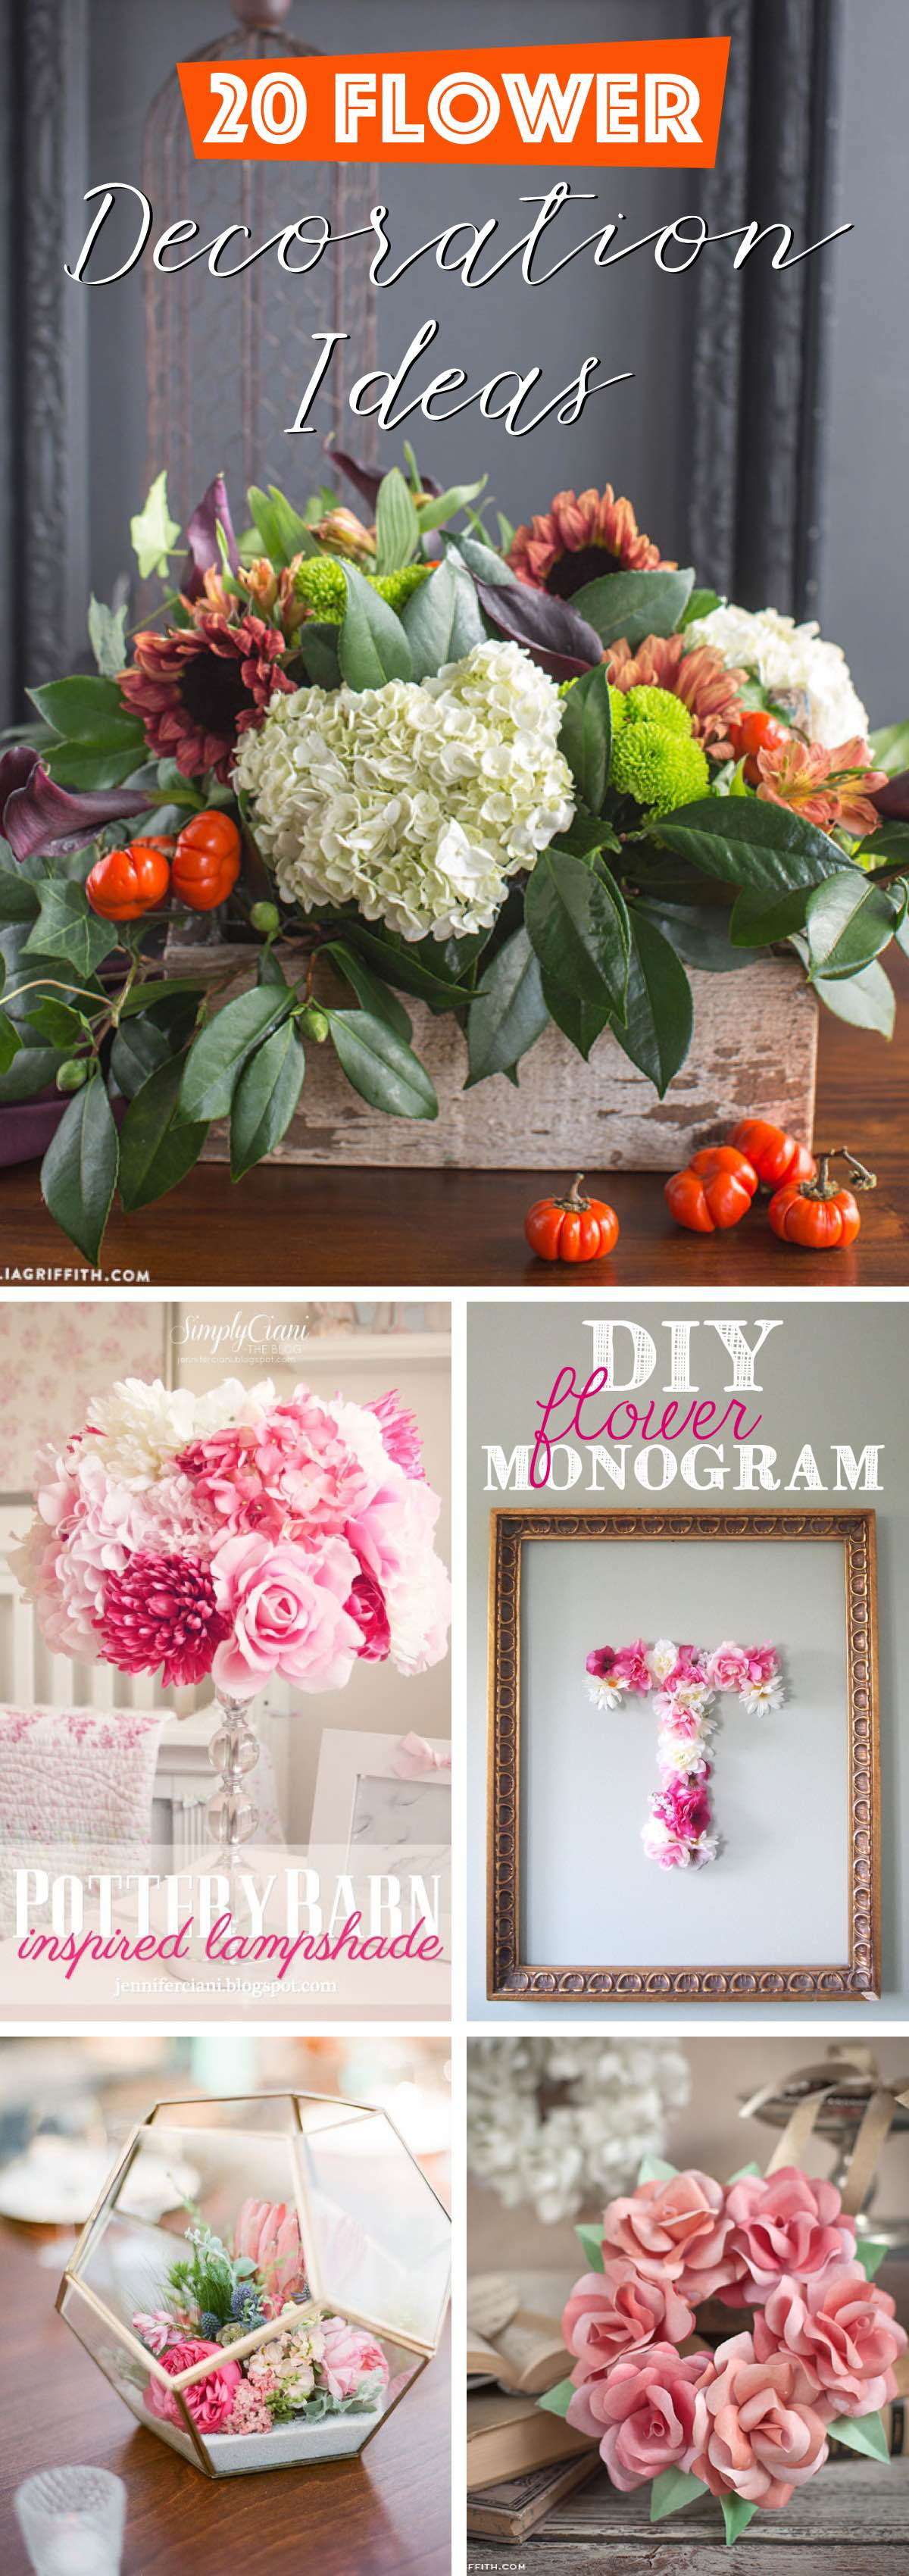 20 Flower Decoration Ideas